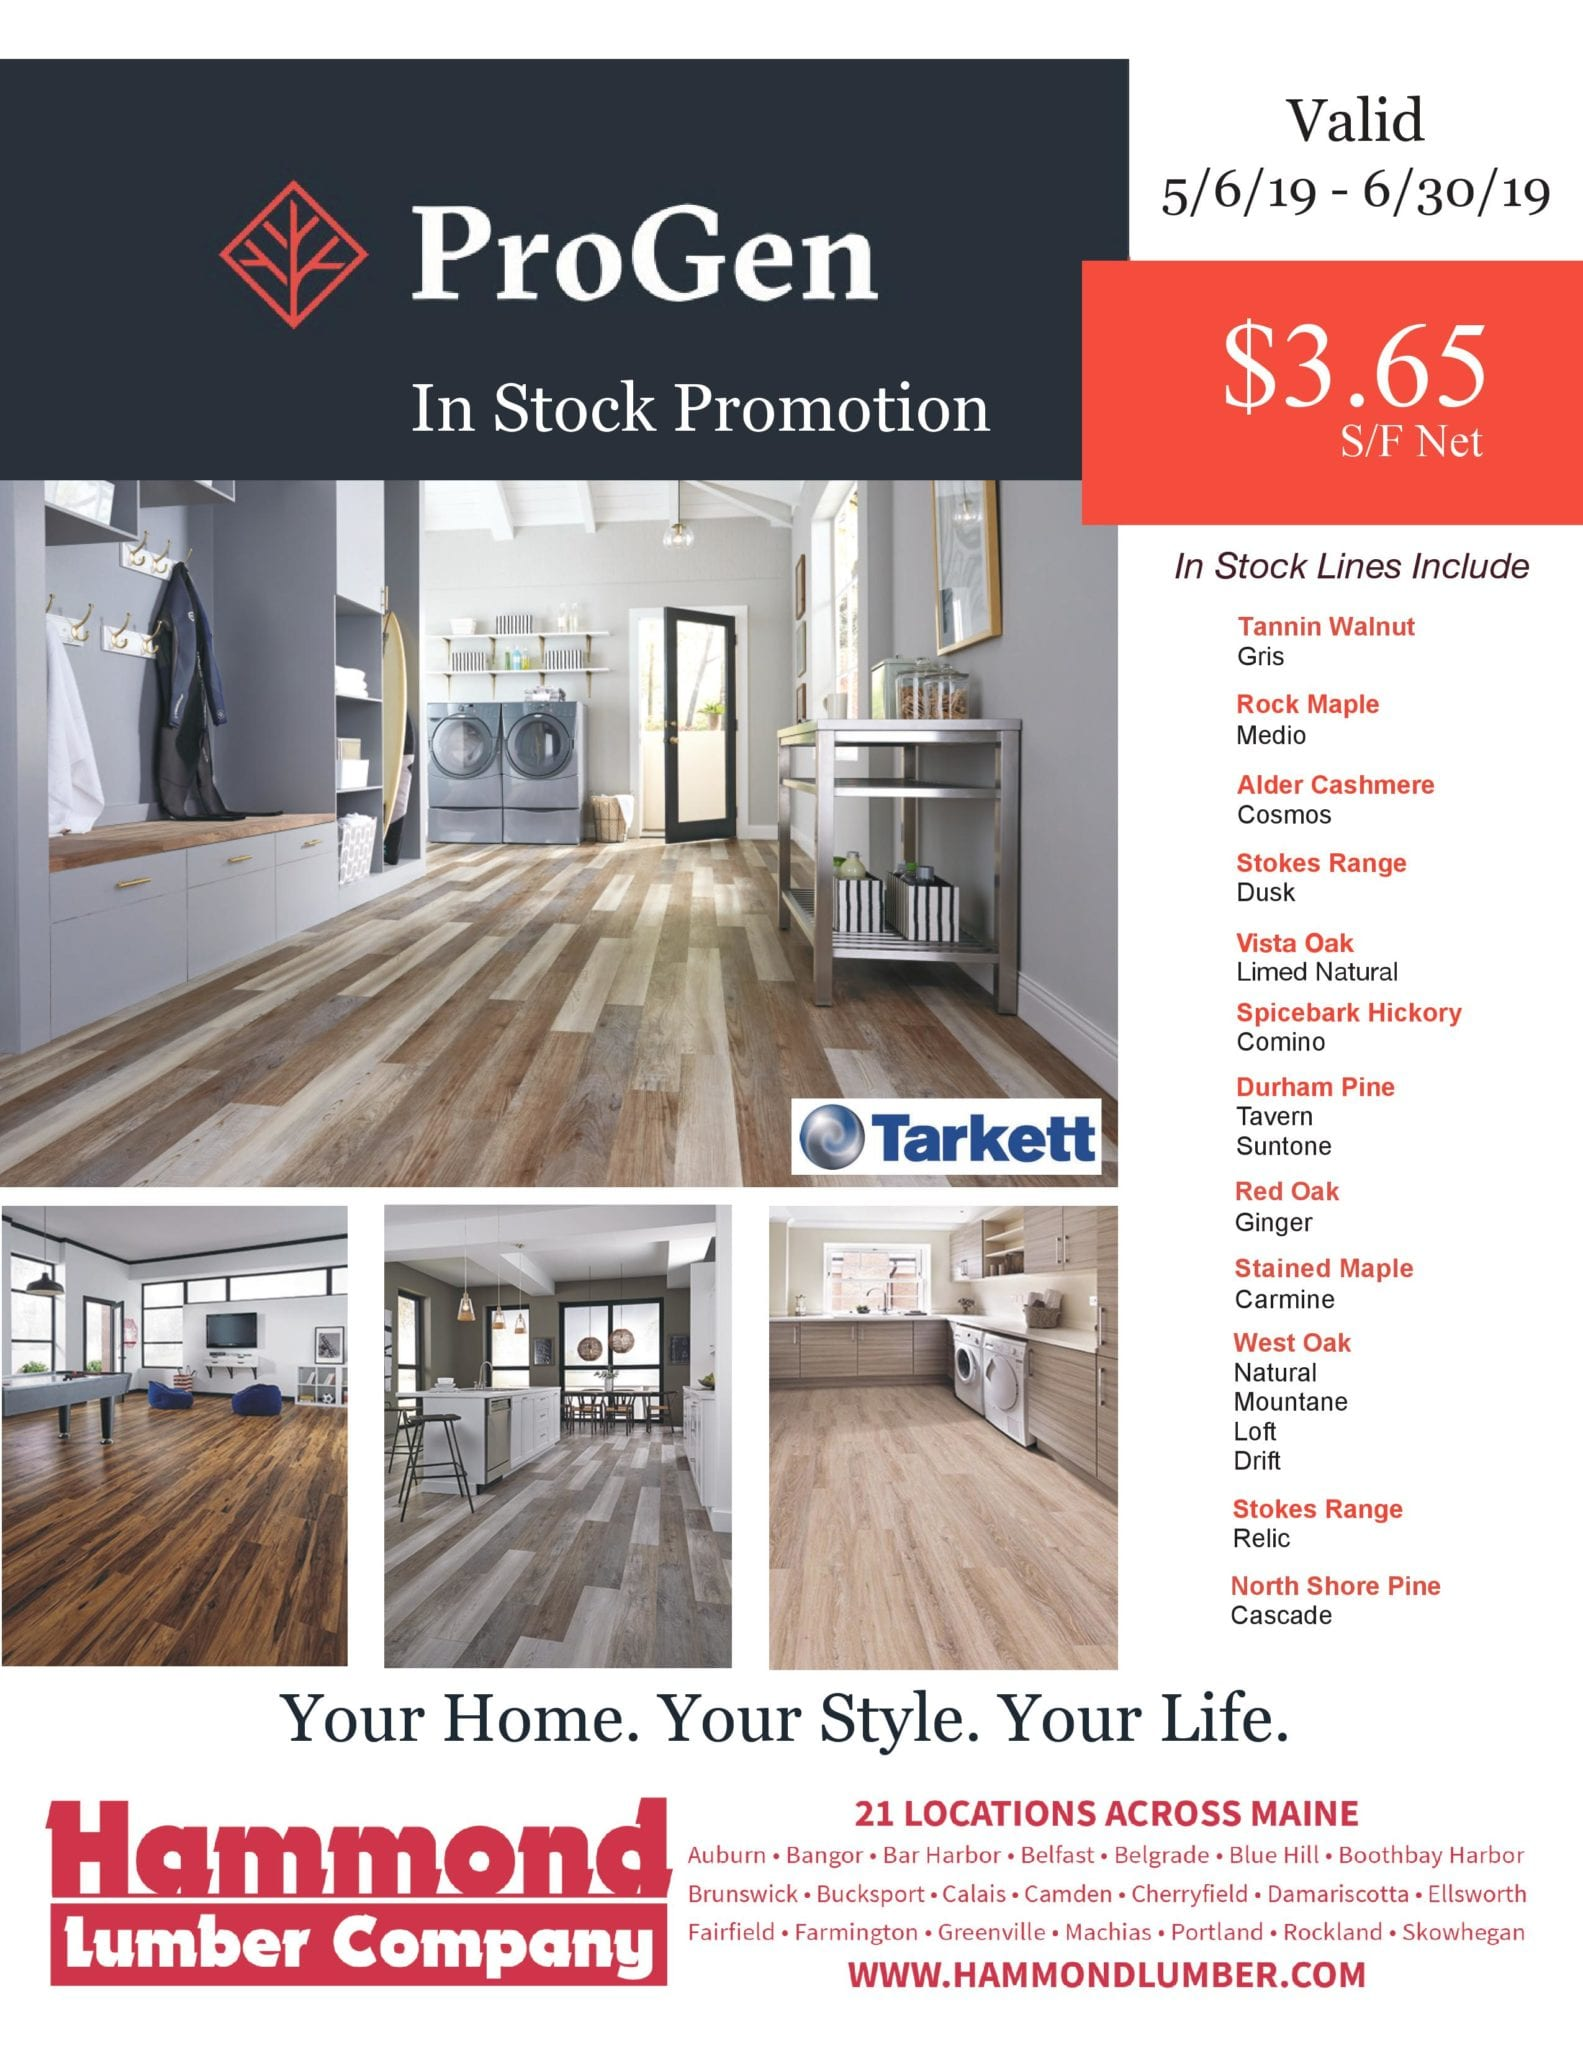 ProGen In Stock Promotion Hammond Lumber Company